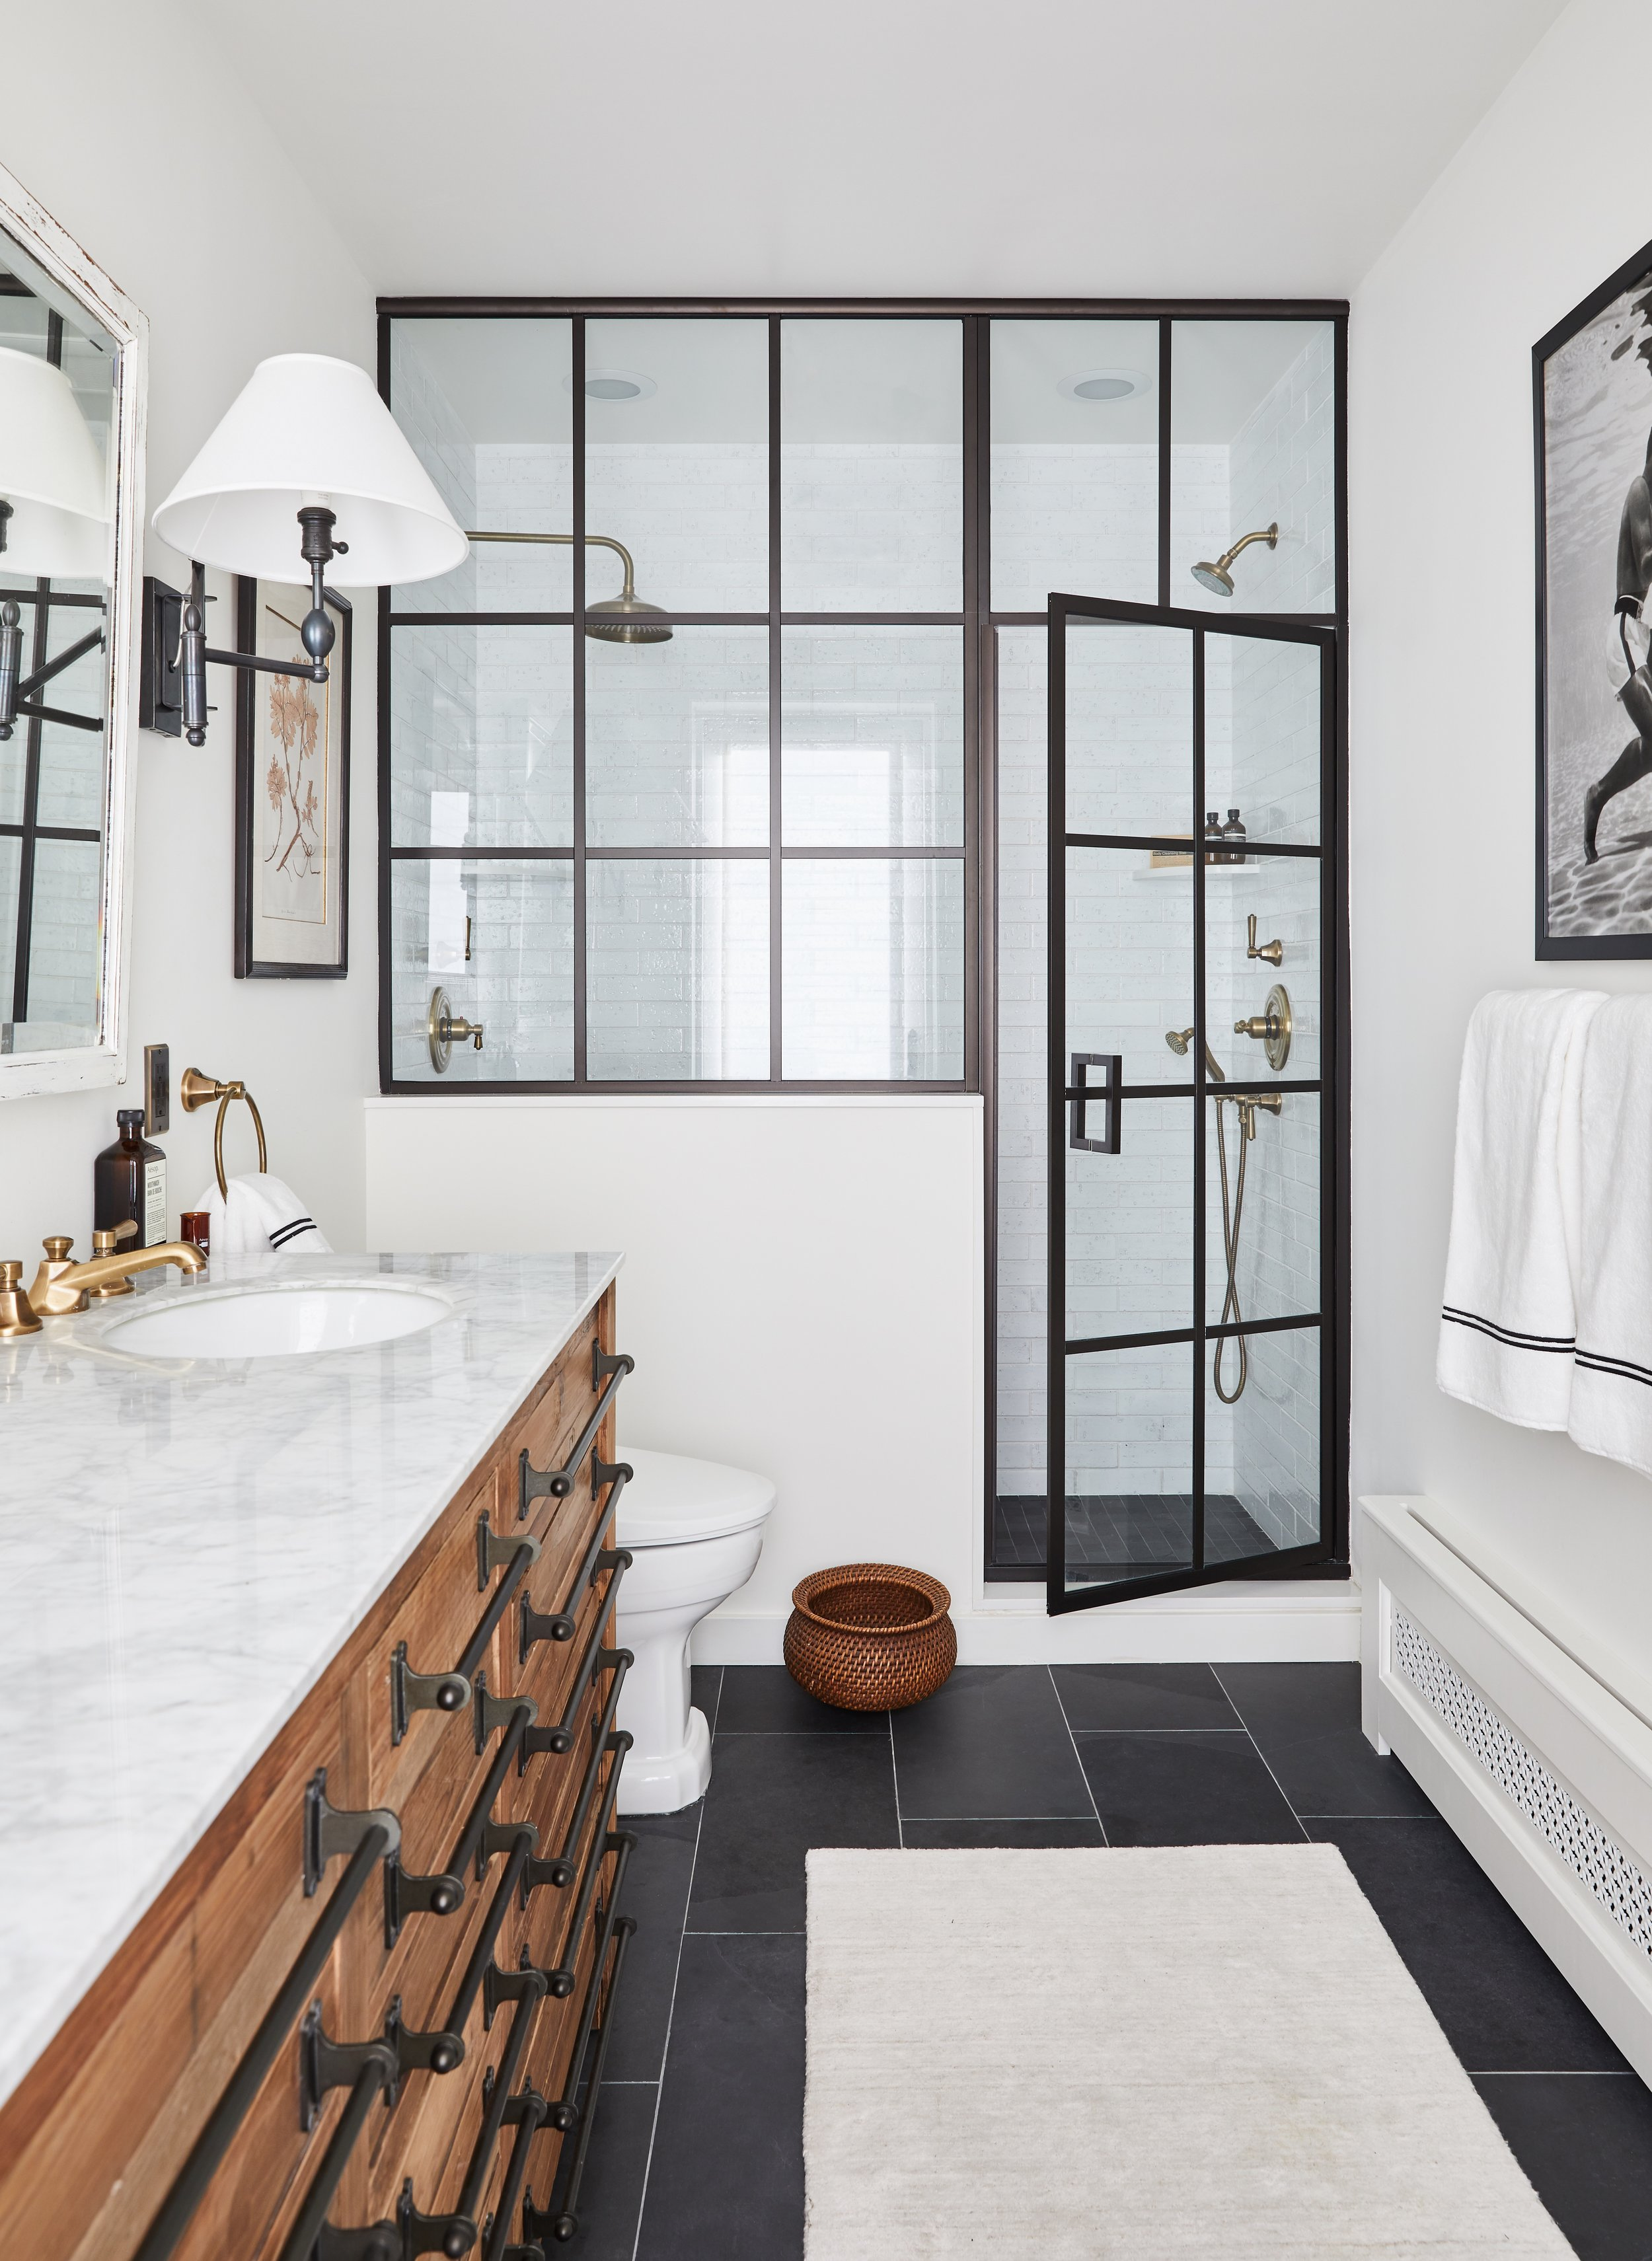 Brooklyn zen with a touch of masculinity was our goal for this Master Bath in Fort Greene Brooklyn that was featured in House Beautiful. Radiant heat makes these slate floors from Stone Source extra toasty and the custom glass shower enclosure steals the show. A reclaimed pine double vanity with Carrara marble from Restoration Furniture and Design gives ample space for storage while adding warmth to this otherwise classic black and white bathroom.